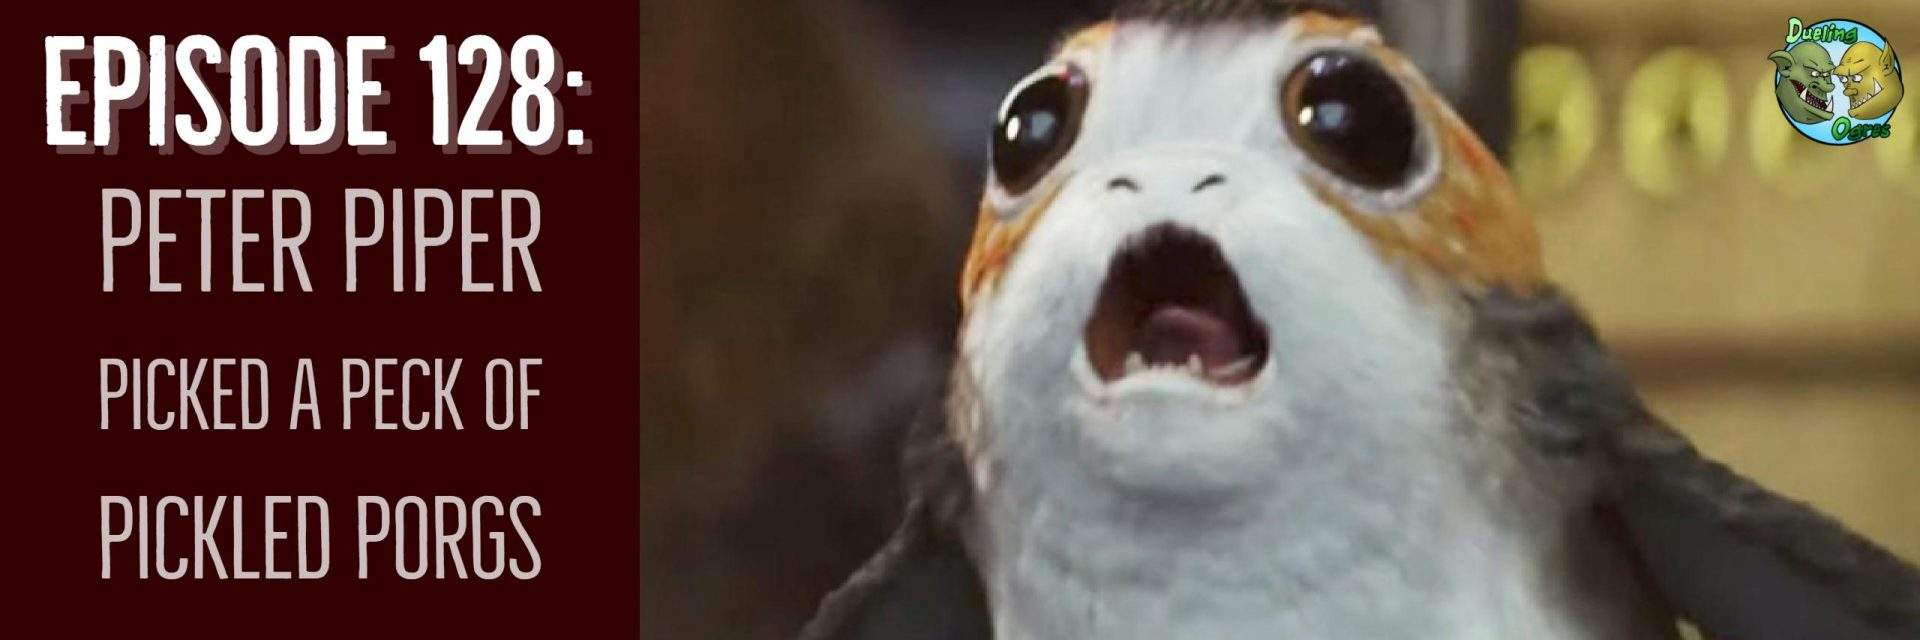 Episode 128: Peter Piper Picked a Peck of Pickled Porgs